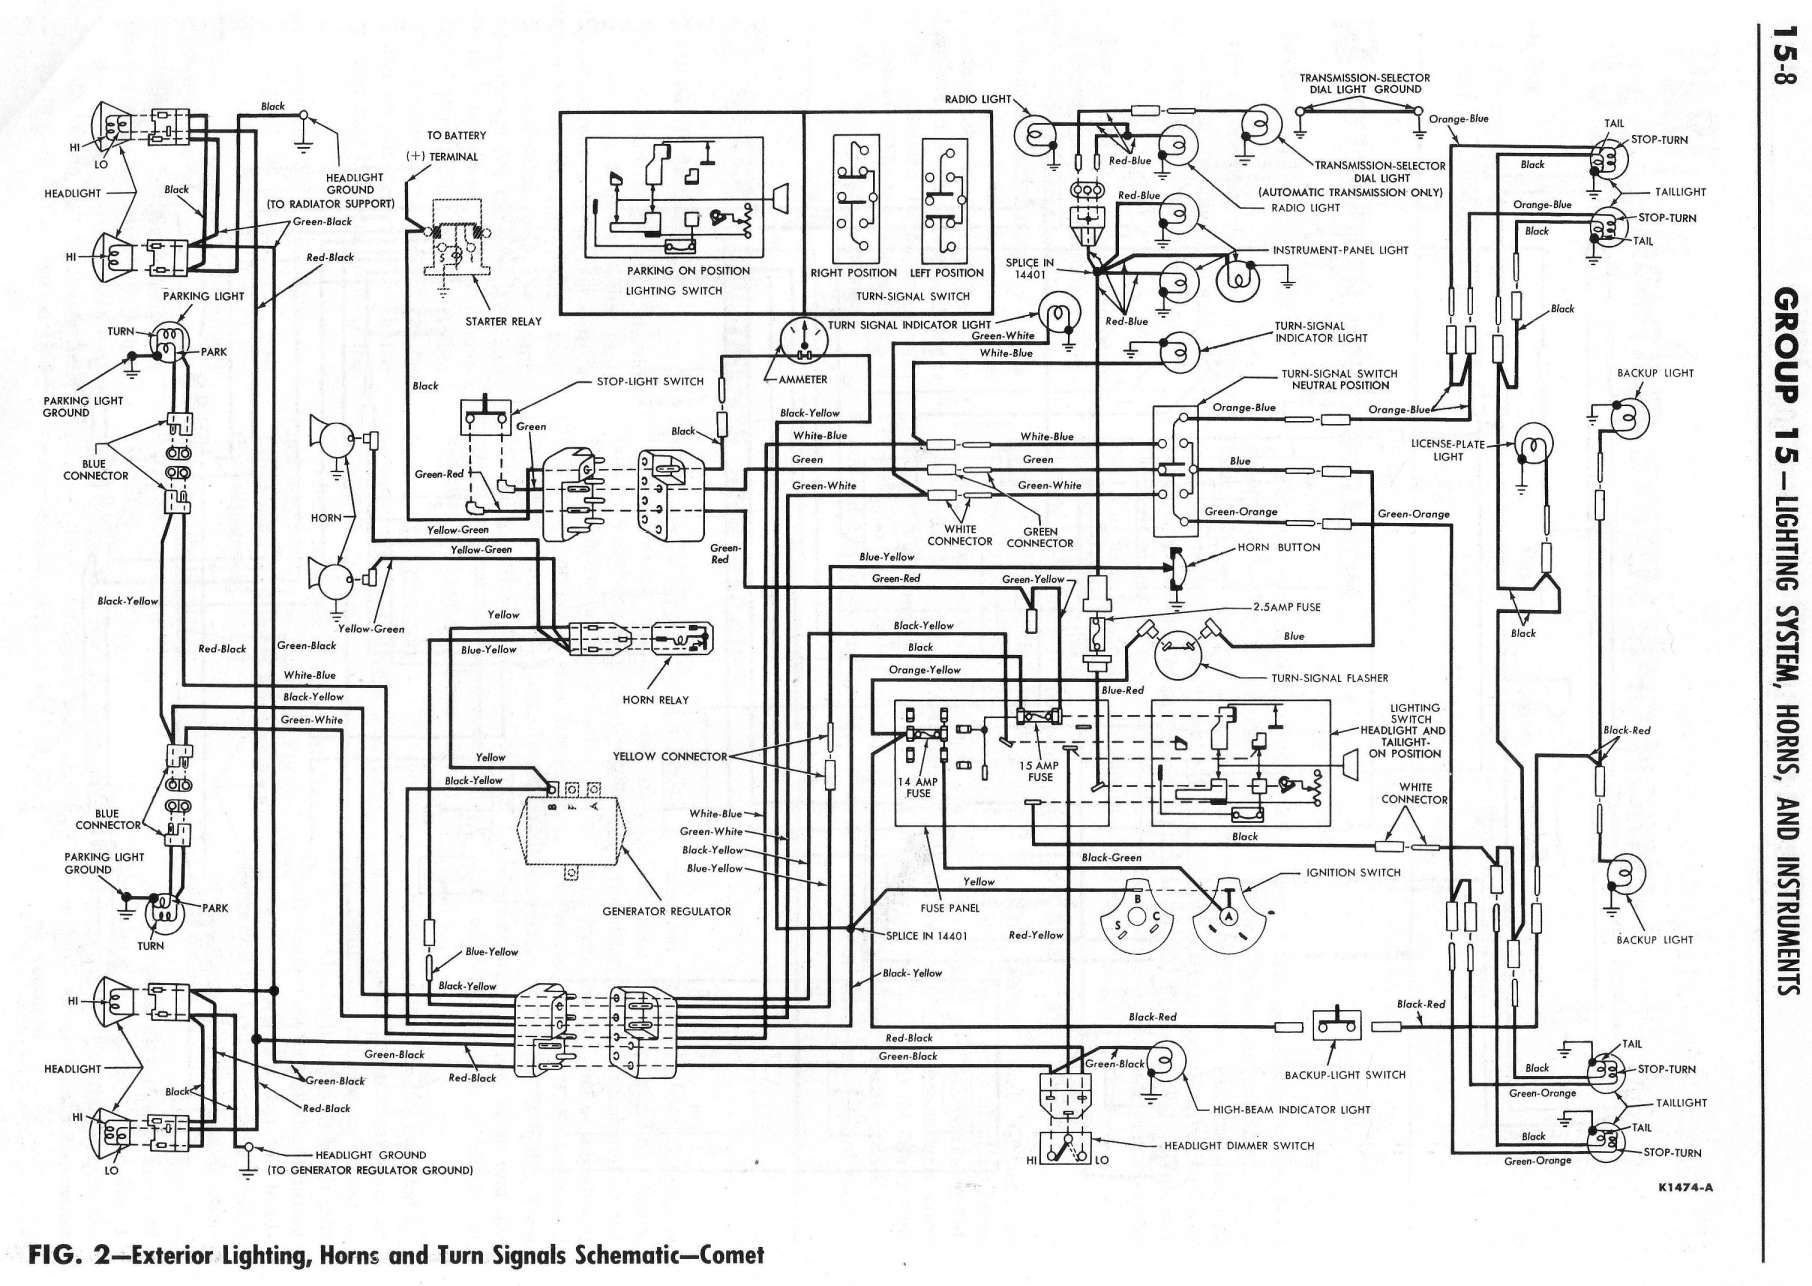 1966 Chevelle Wiring Diagram For Steering Colum